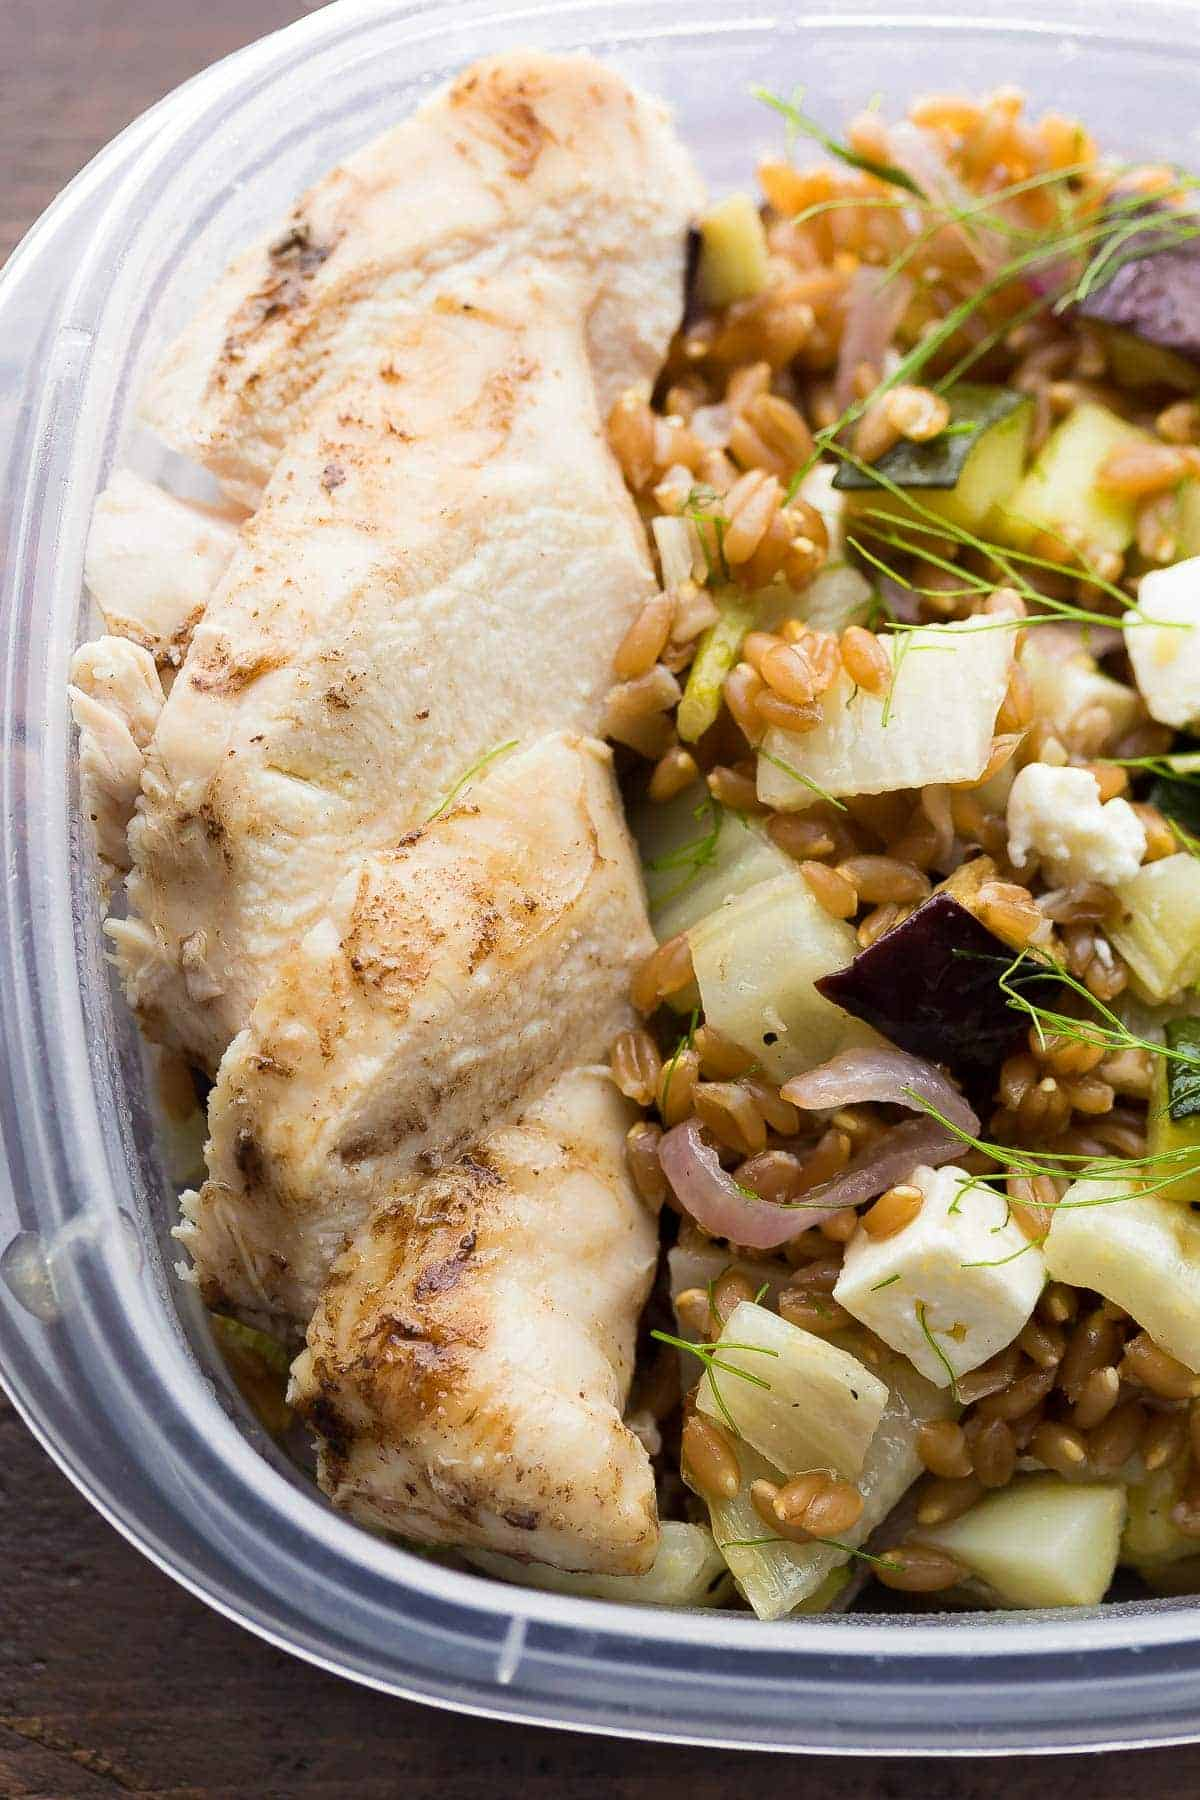 Mediterranean Farro Chicken Lunch Bowls, make a big batch on the weekend and you'll have 4 work lunches ready